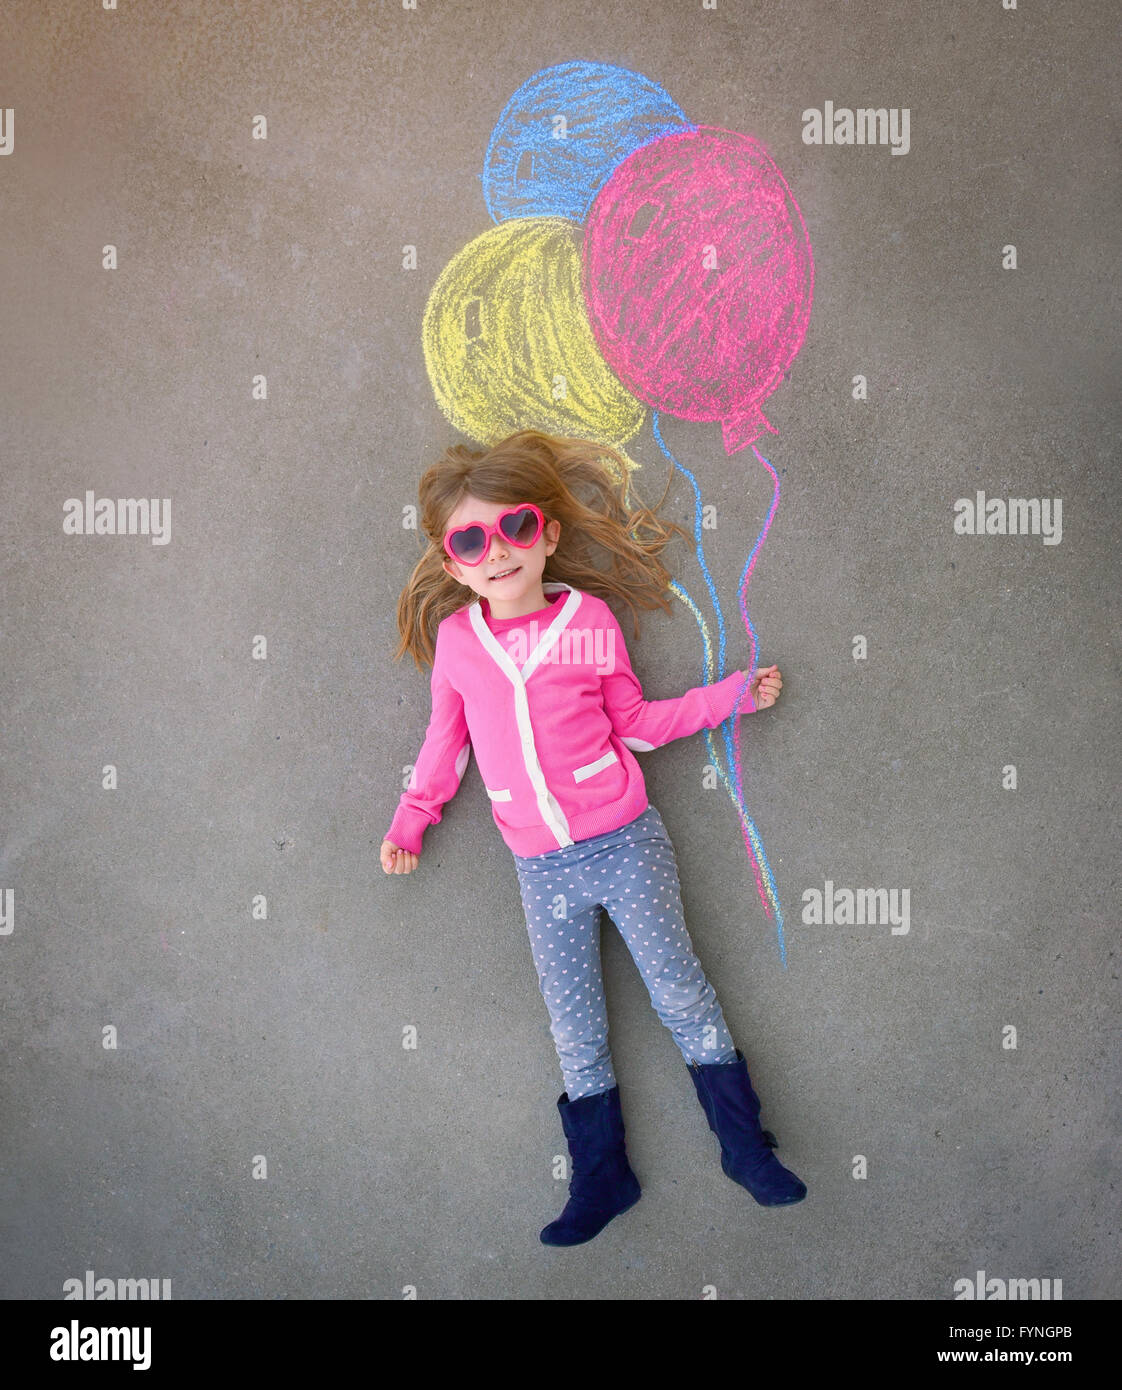 A cute little girl with sunglasses is holding creative chalk balloons drawn on the sidewalk cement for a imagination, - Stock Image